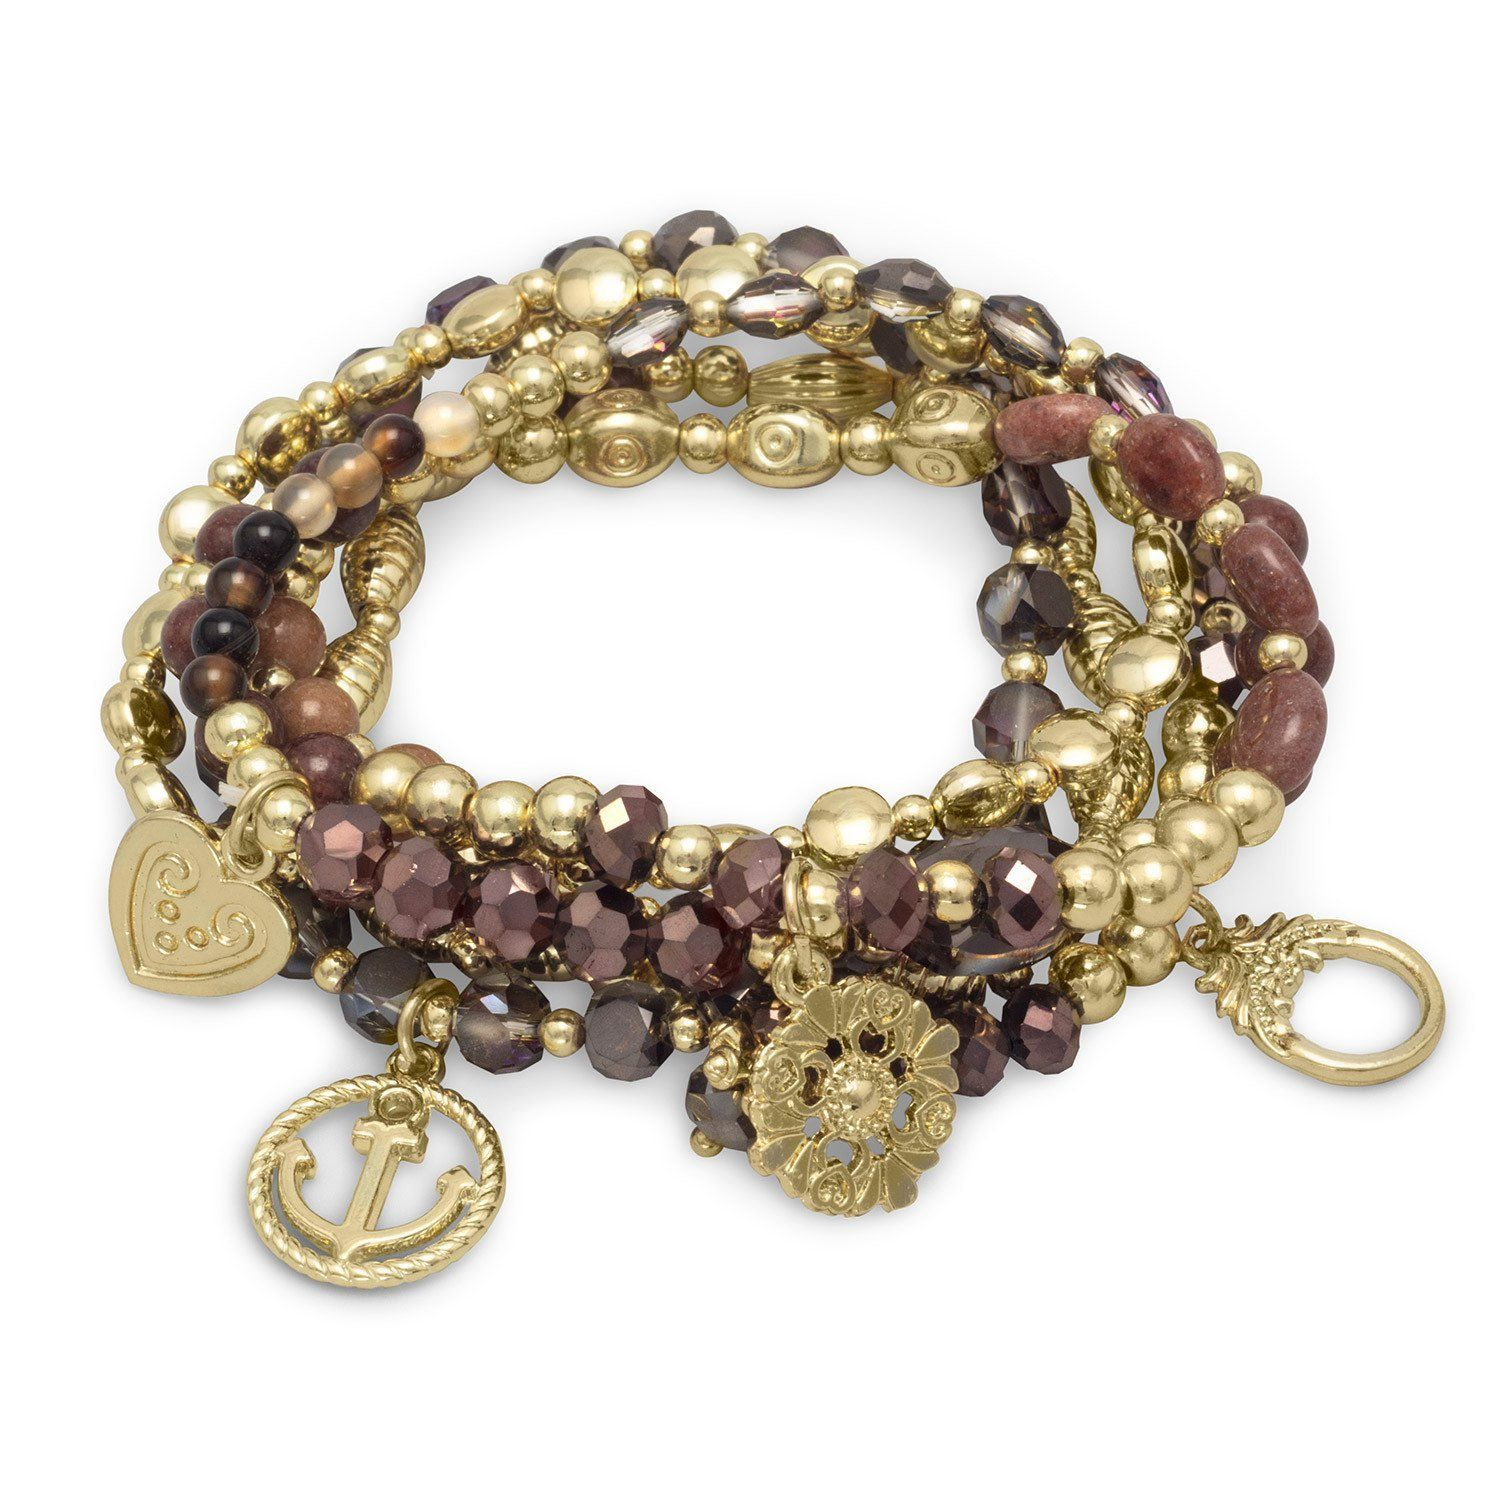 Set of gold tone multicharm fashion stretch bracelets with brown